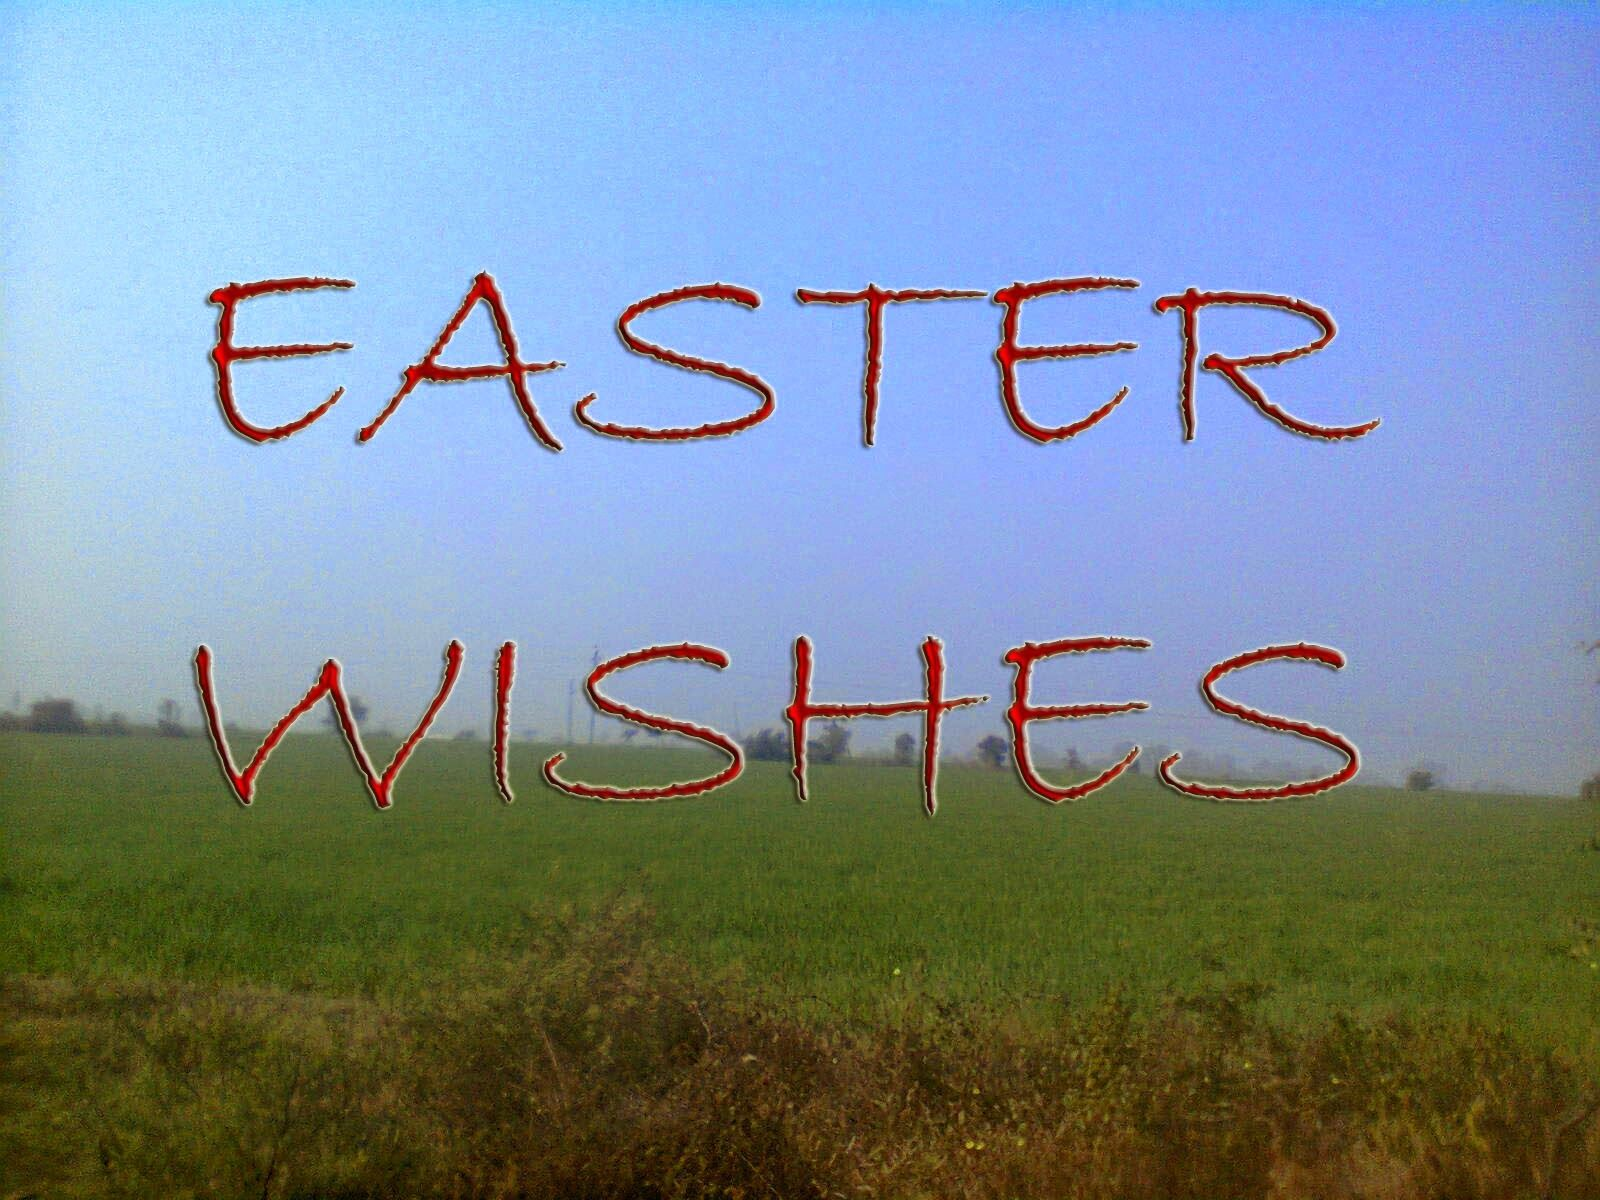 Mobile funny sms easter wishes easter sms easter easter wishes mobile funny sms easter wishes easter sms easter easter wishes easter messages kristyandbryce Gallery